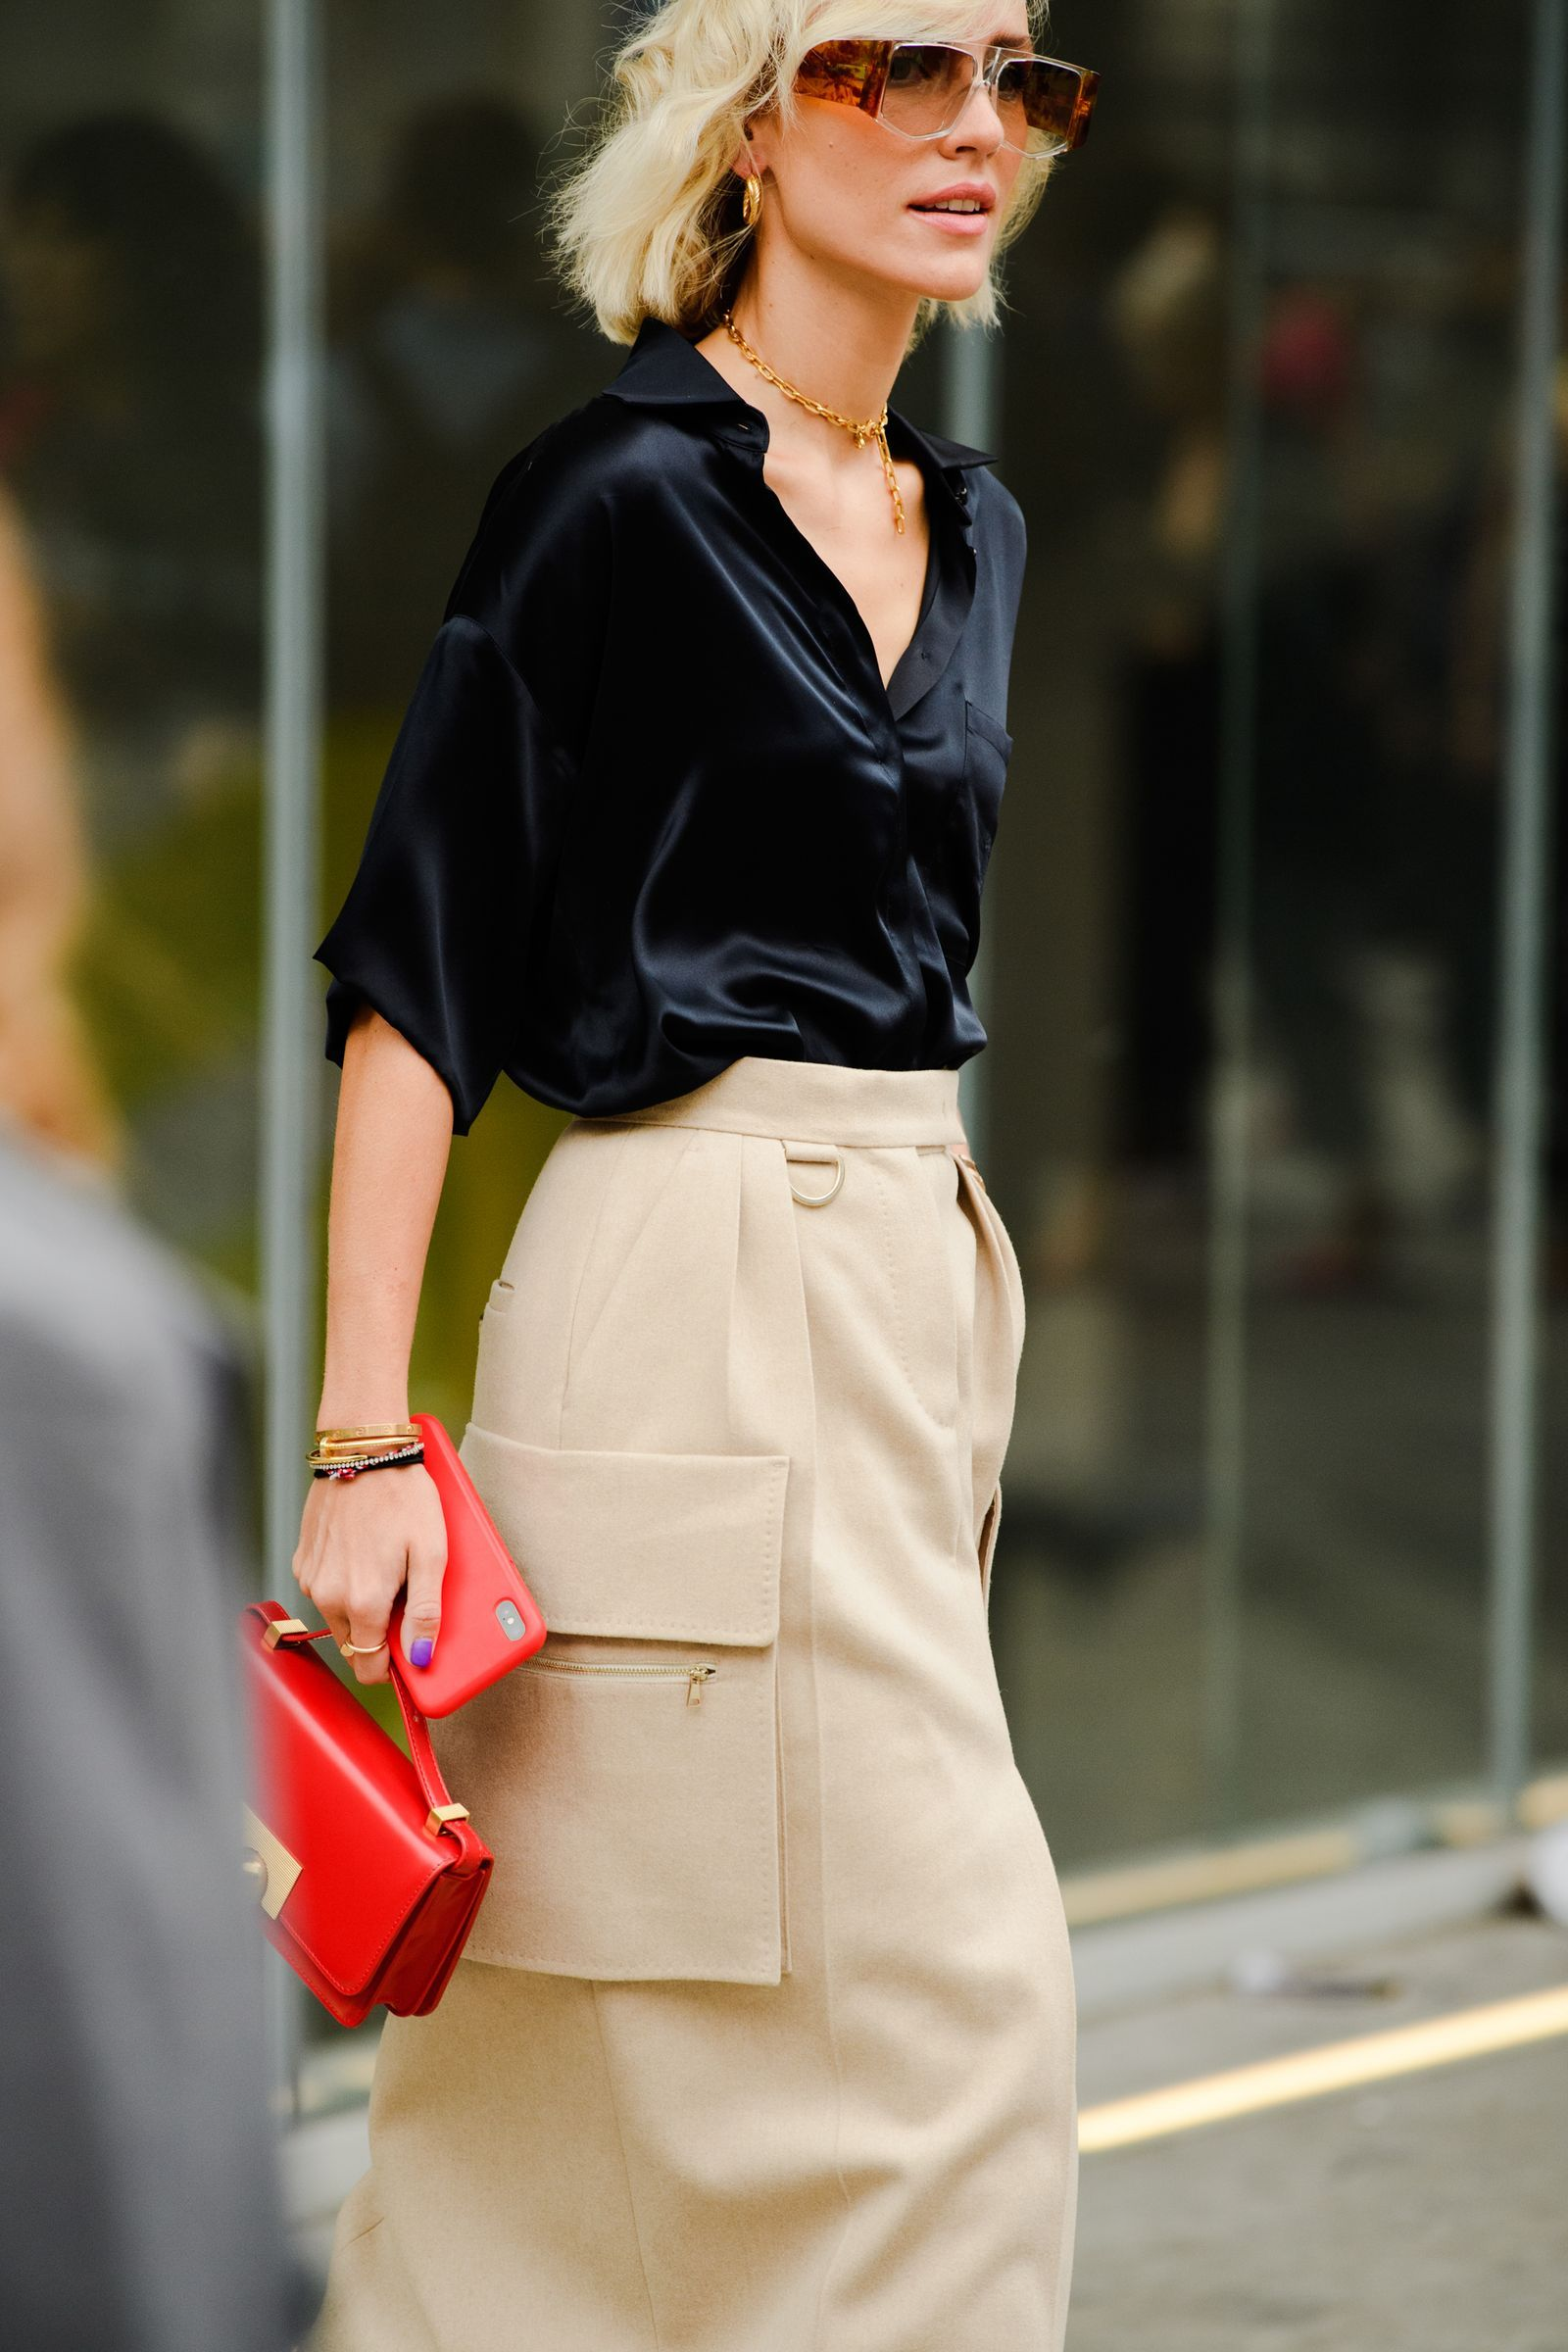 The Best Street Style to be Found at Milan Fashion Week